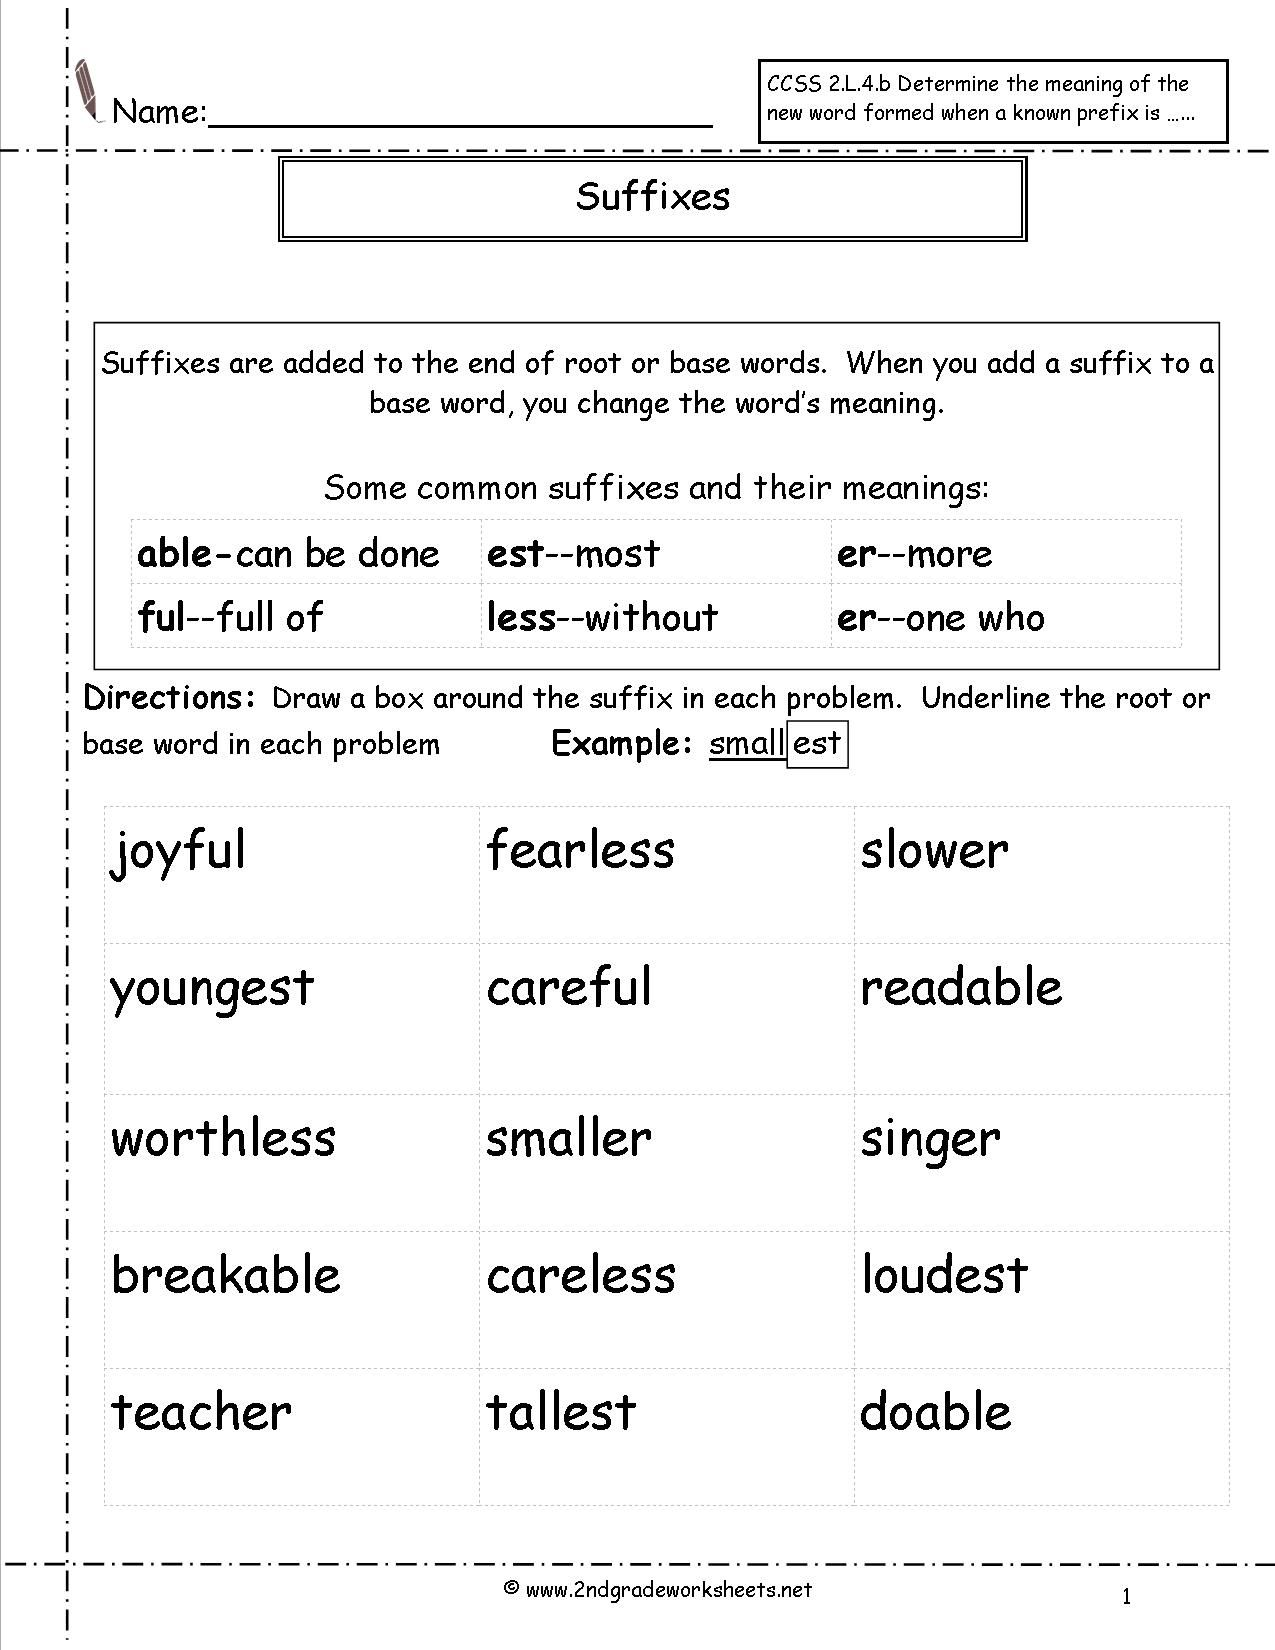 medium resolution of Pin by Laura Bradbury on Spring Unit in 2020   Suffixes worksheets